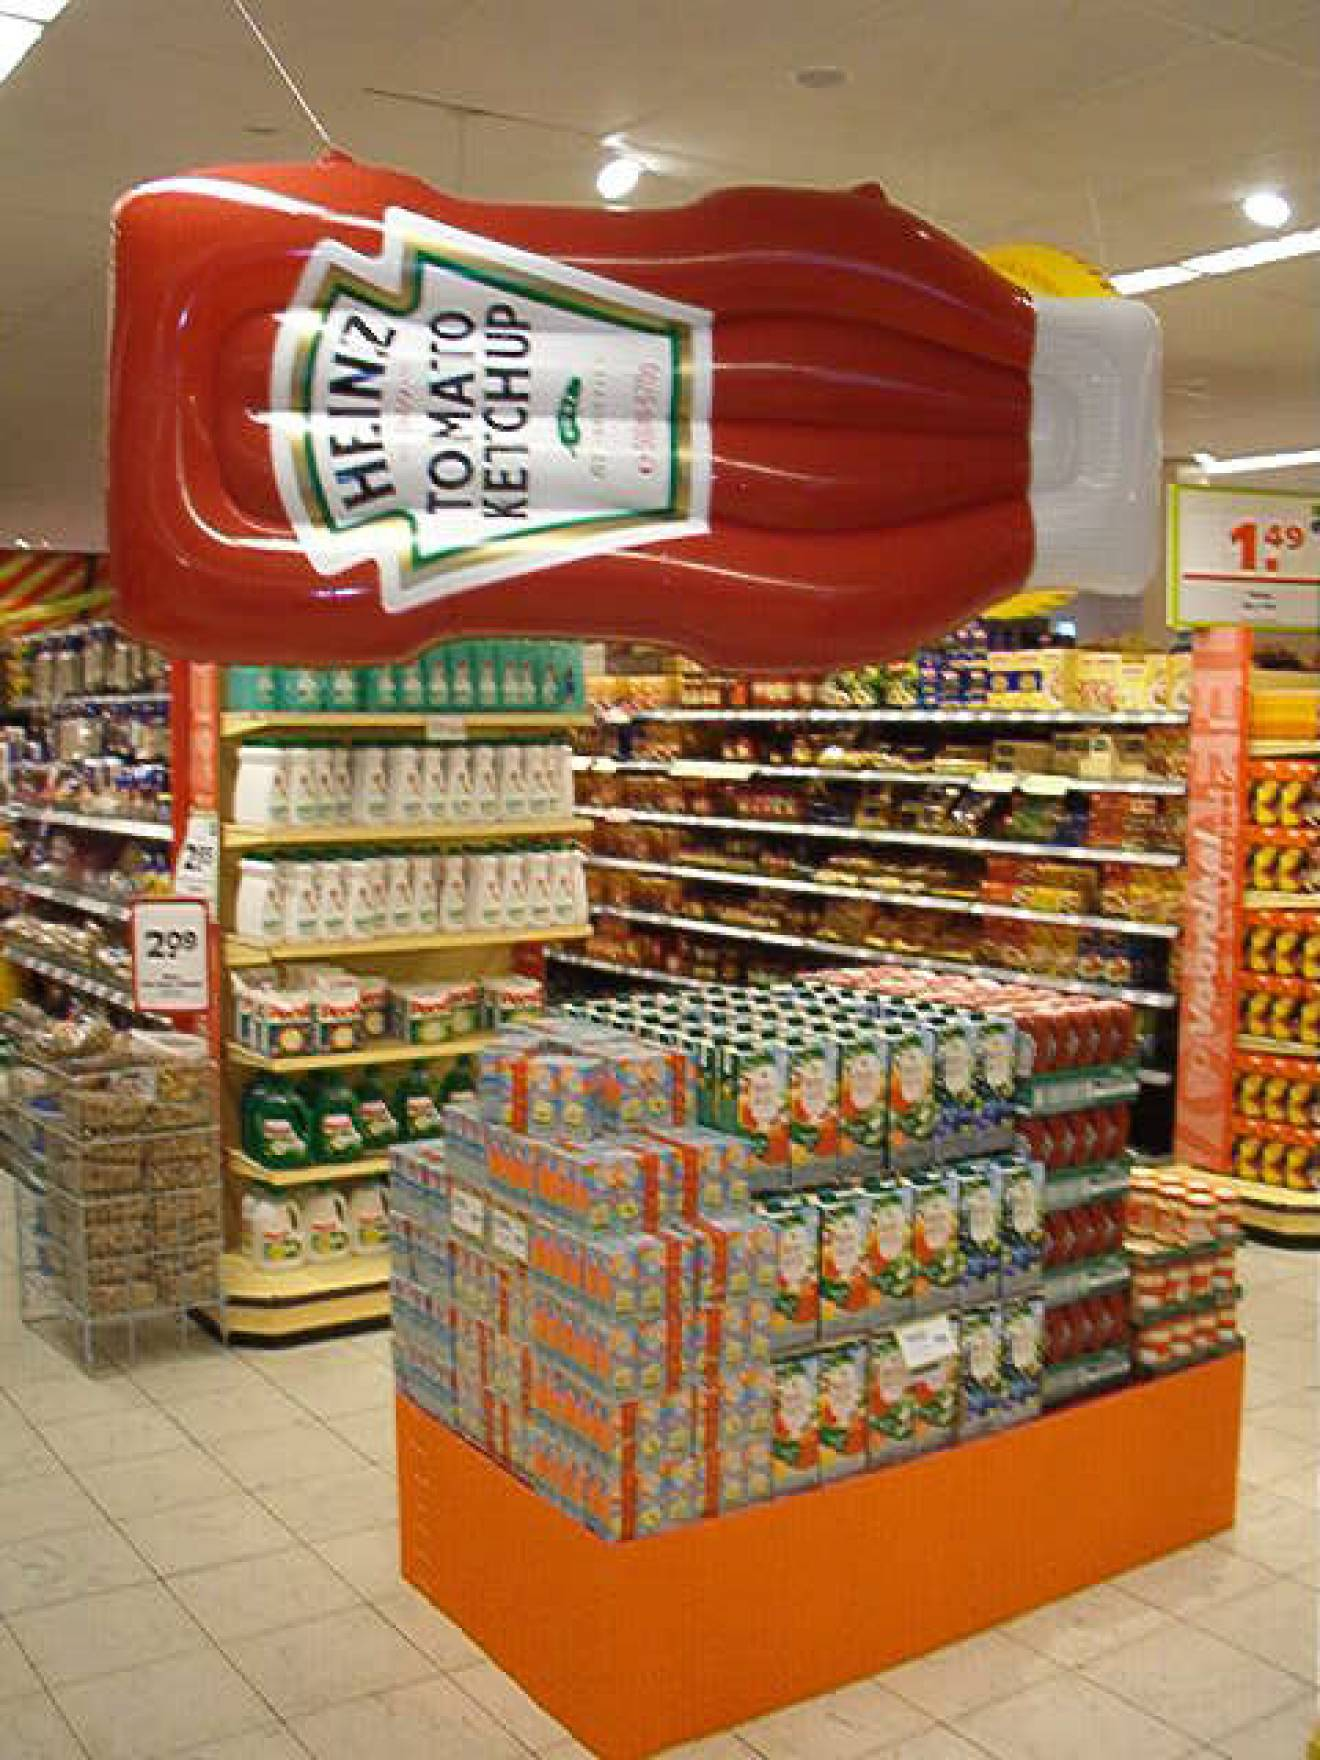 Miniature inflatable mattresses Ketchup, tomato heinz, supermarket stand, shop stand, store stand, booth X-Treme Creations